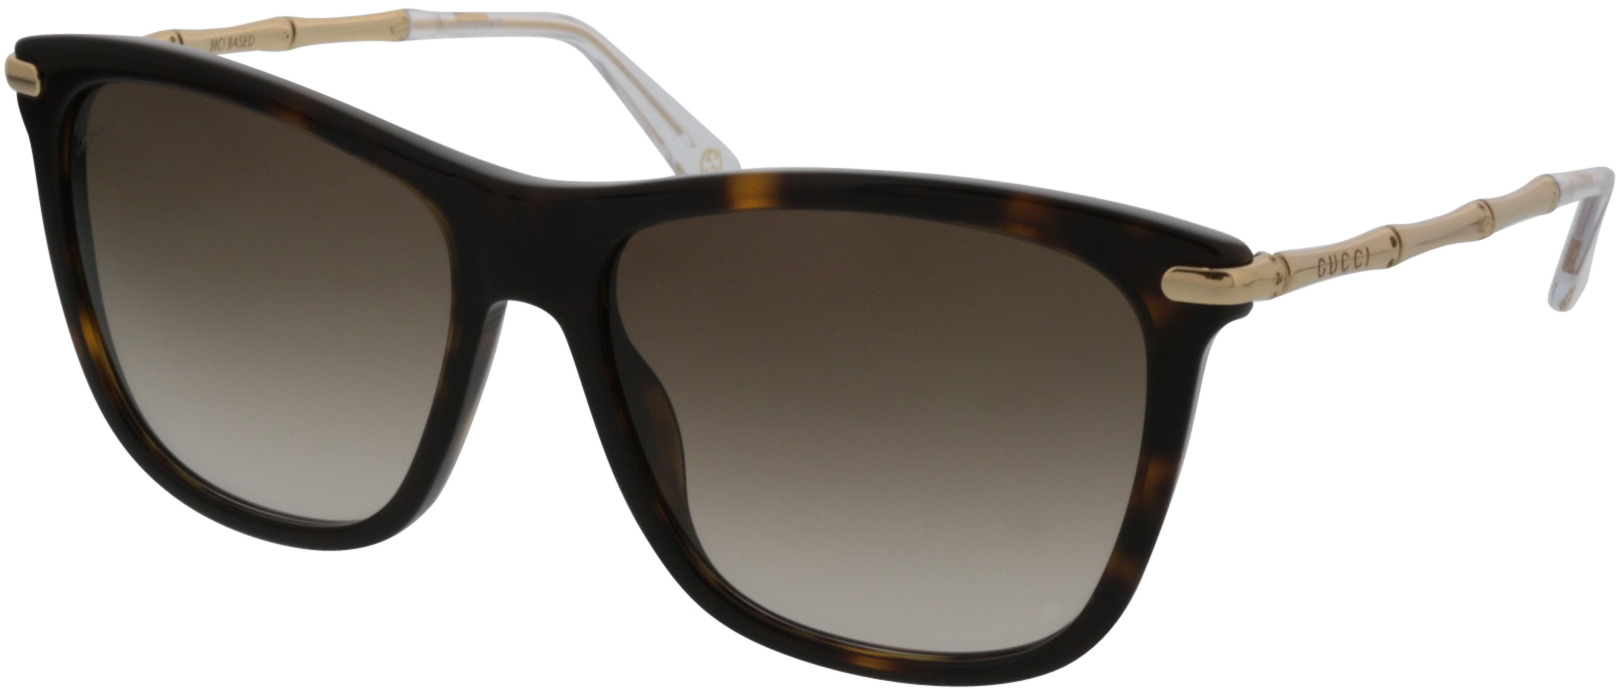 Picture of glasses model Gucci GG3778/S LVL 55-16 in angle 330